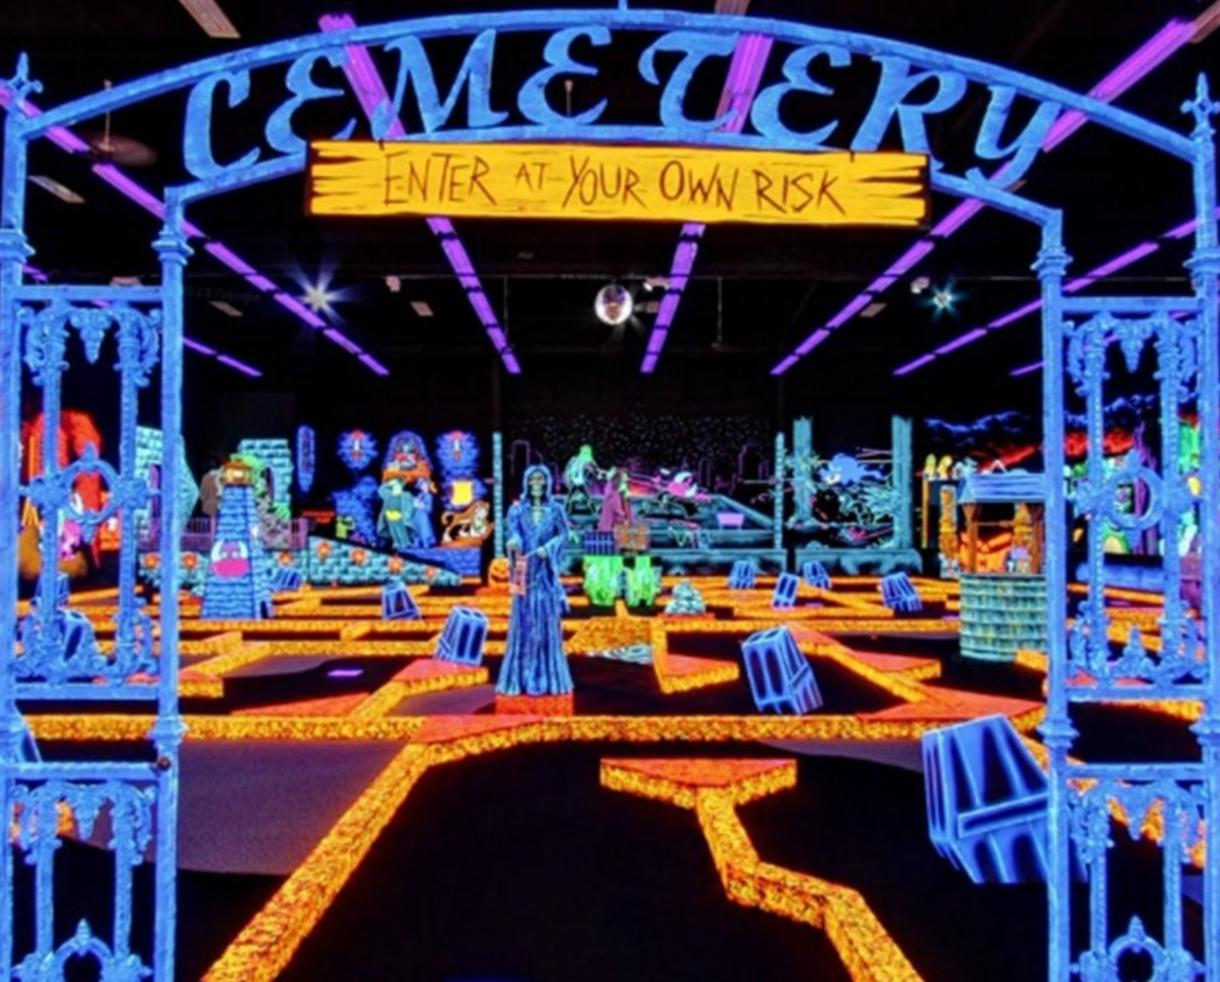 $20 for Four Rounds of Glow-in-the-Dark Golf at Monster Mini Golf Columbia + BIRTHDAY PARTY OPTION (Up to 65% Off)